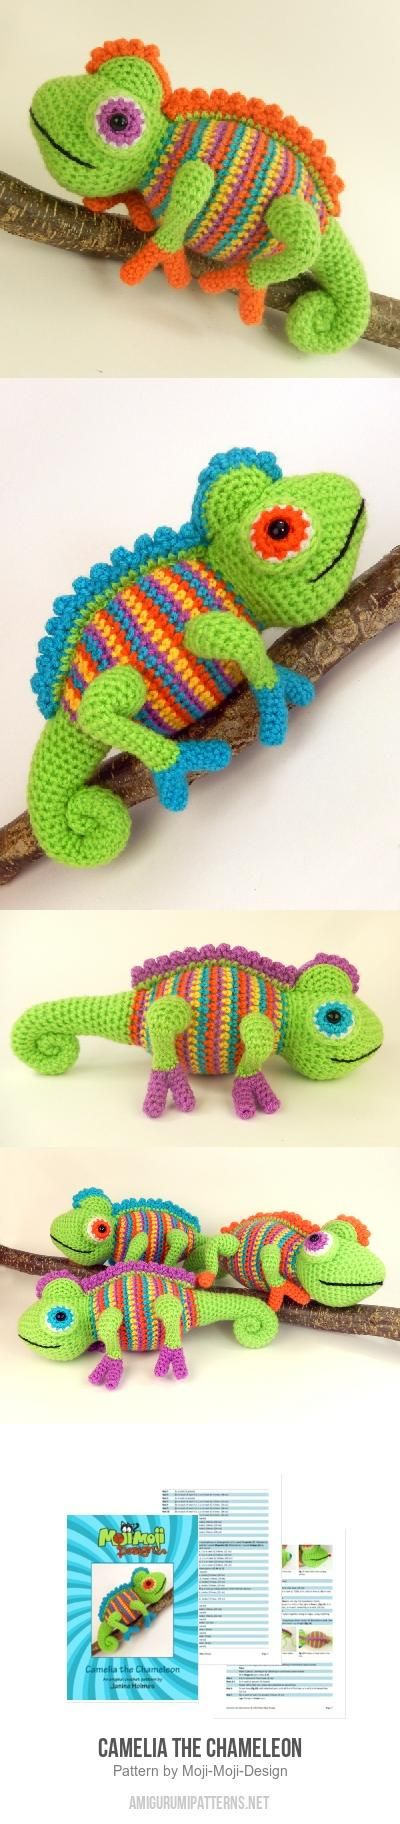 Colorful chameleon crochet pattern. He looks amazing! The kids are going to love their crochet chameleon. Great pattern.